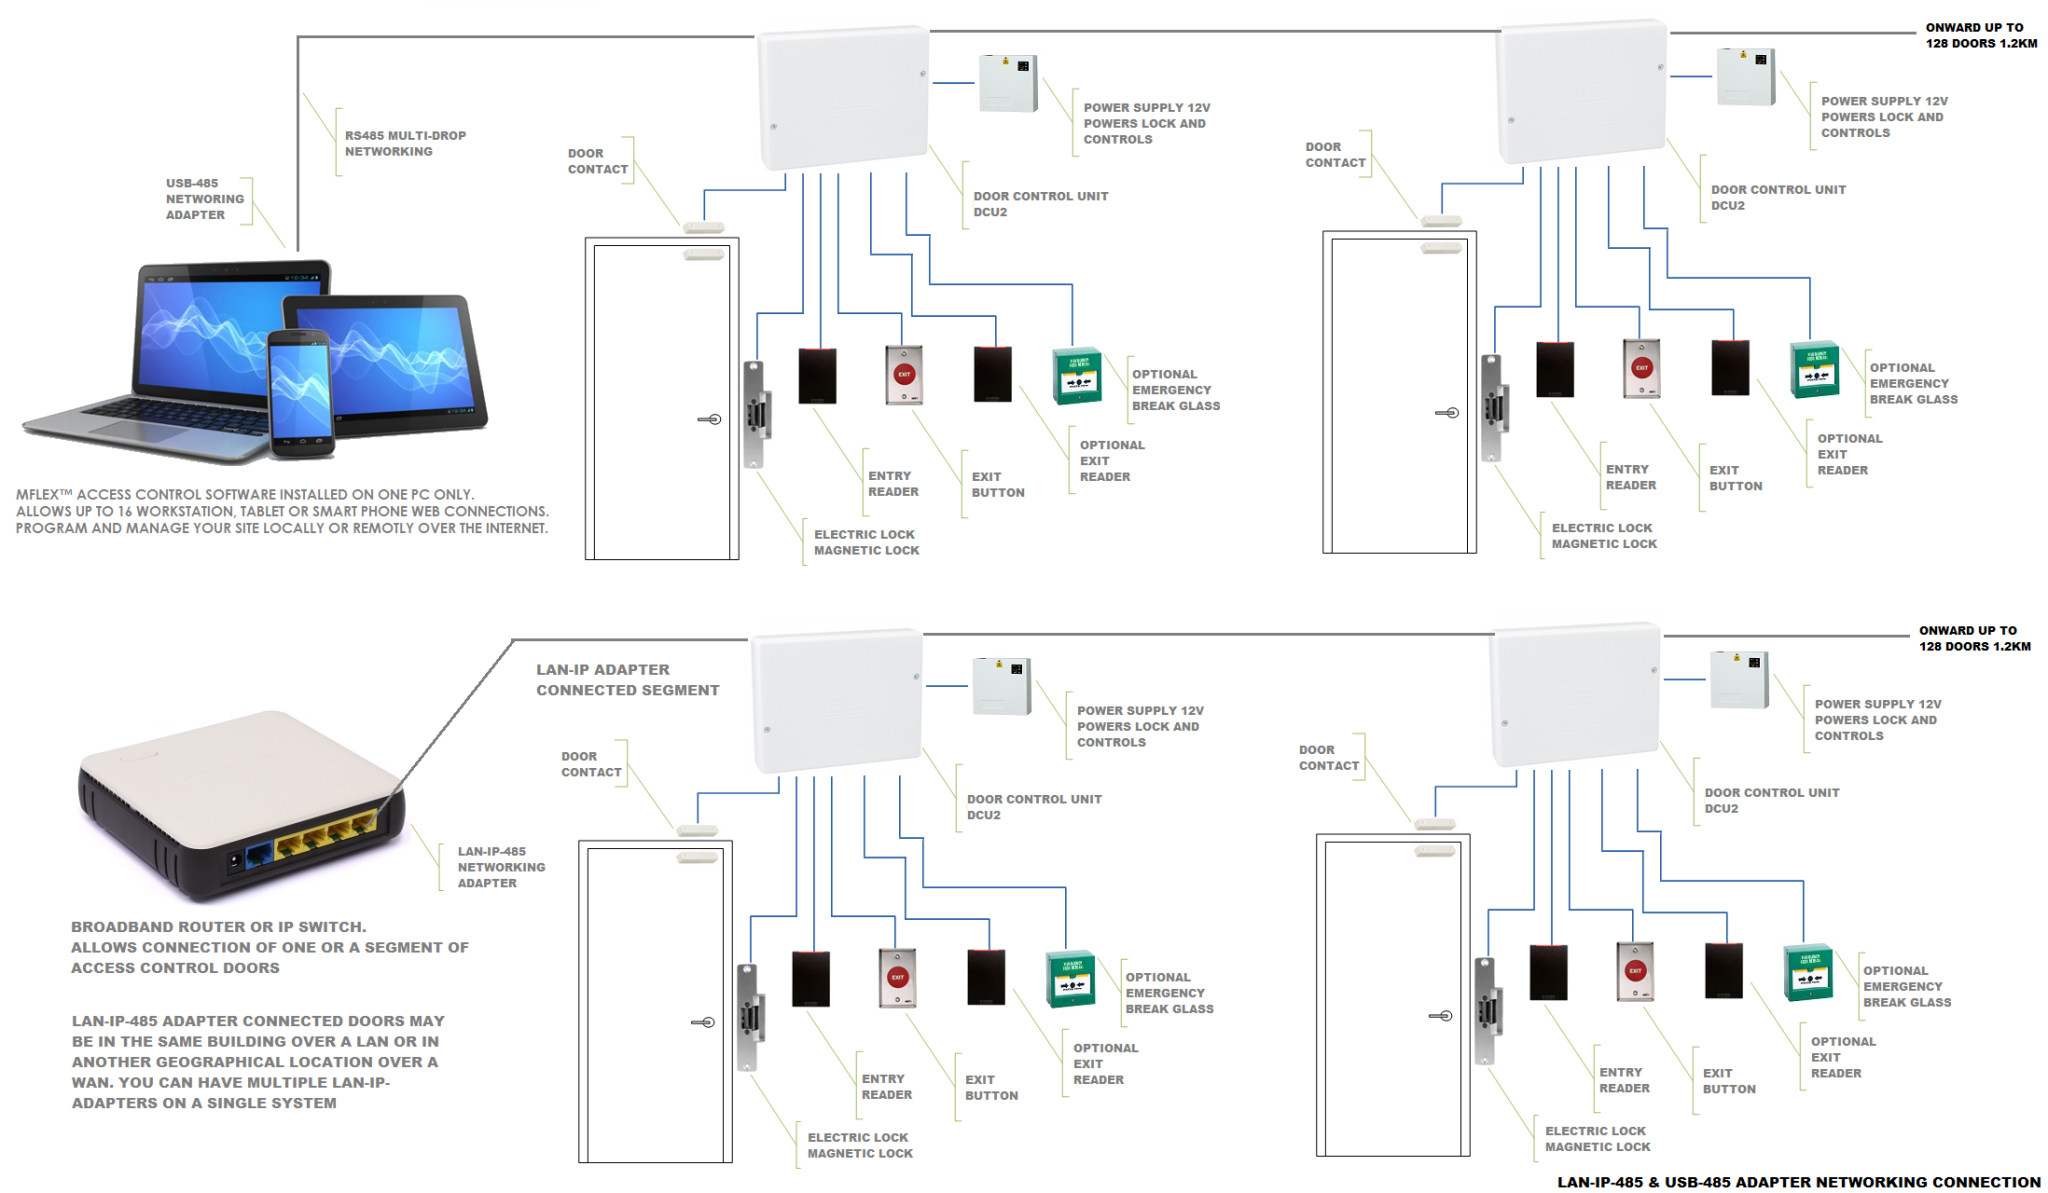 Access Control System Wiring Diagram Starting Know About Honda Cb250 Harness Mflex U2122 Card Systems Door